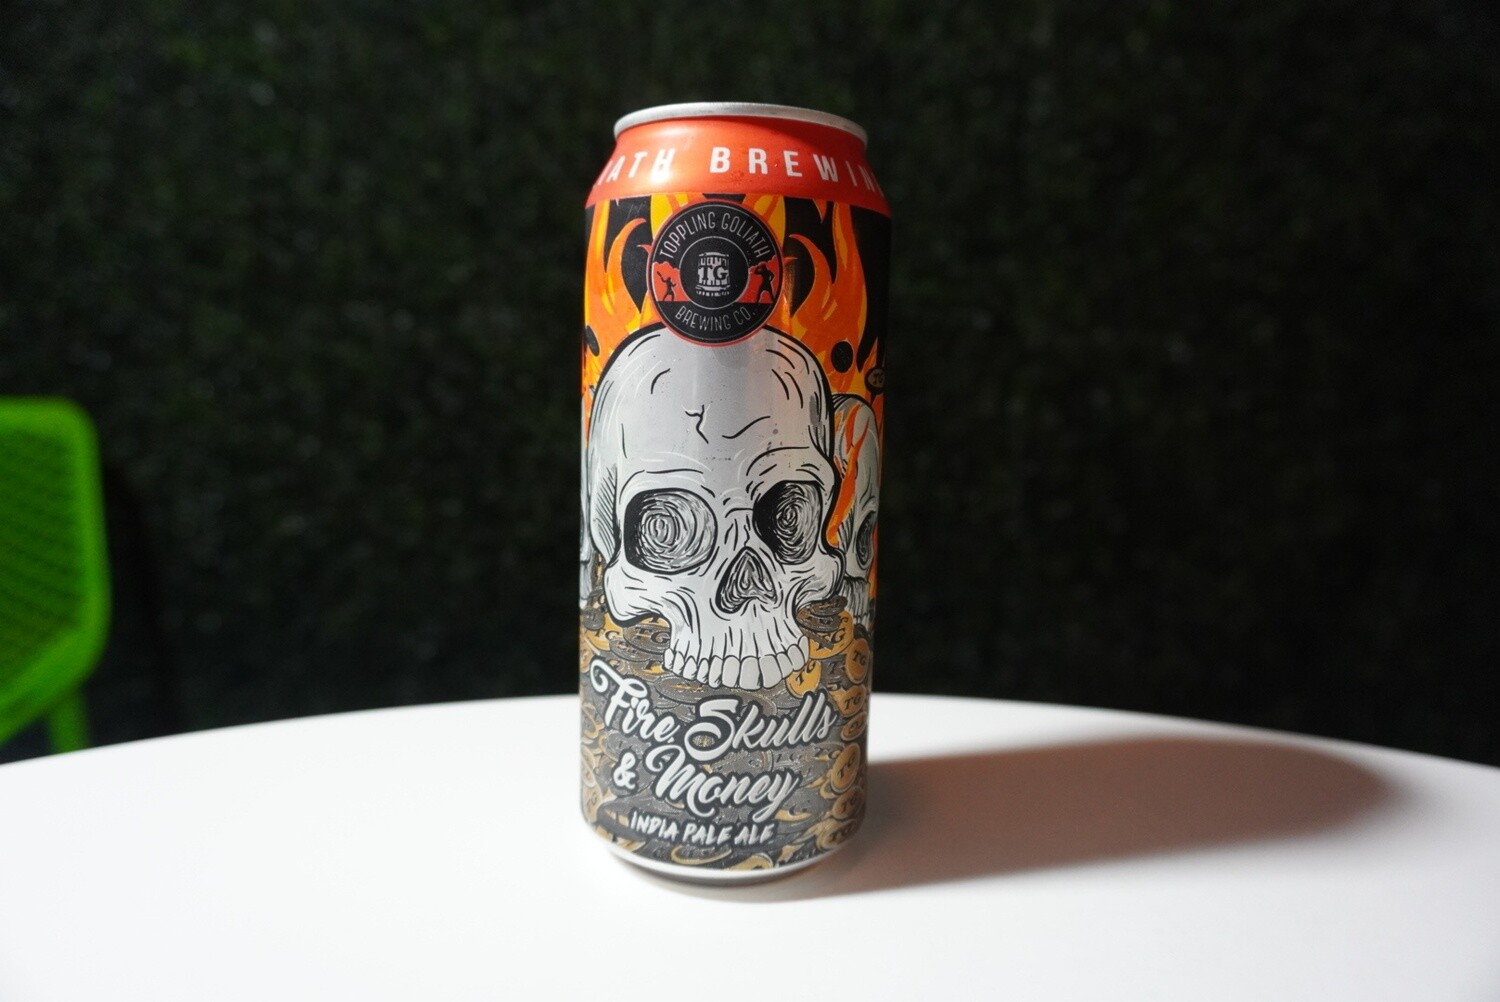 Toppling Goliath - Fire, Skills, & Money - IPA - 7.2% - 16oz Can